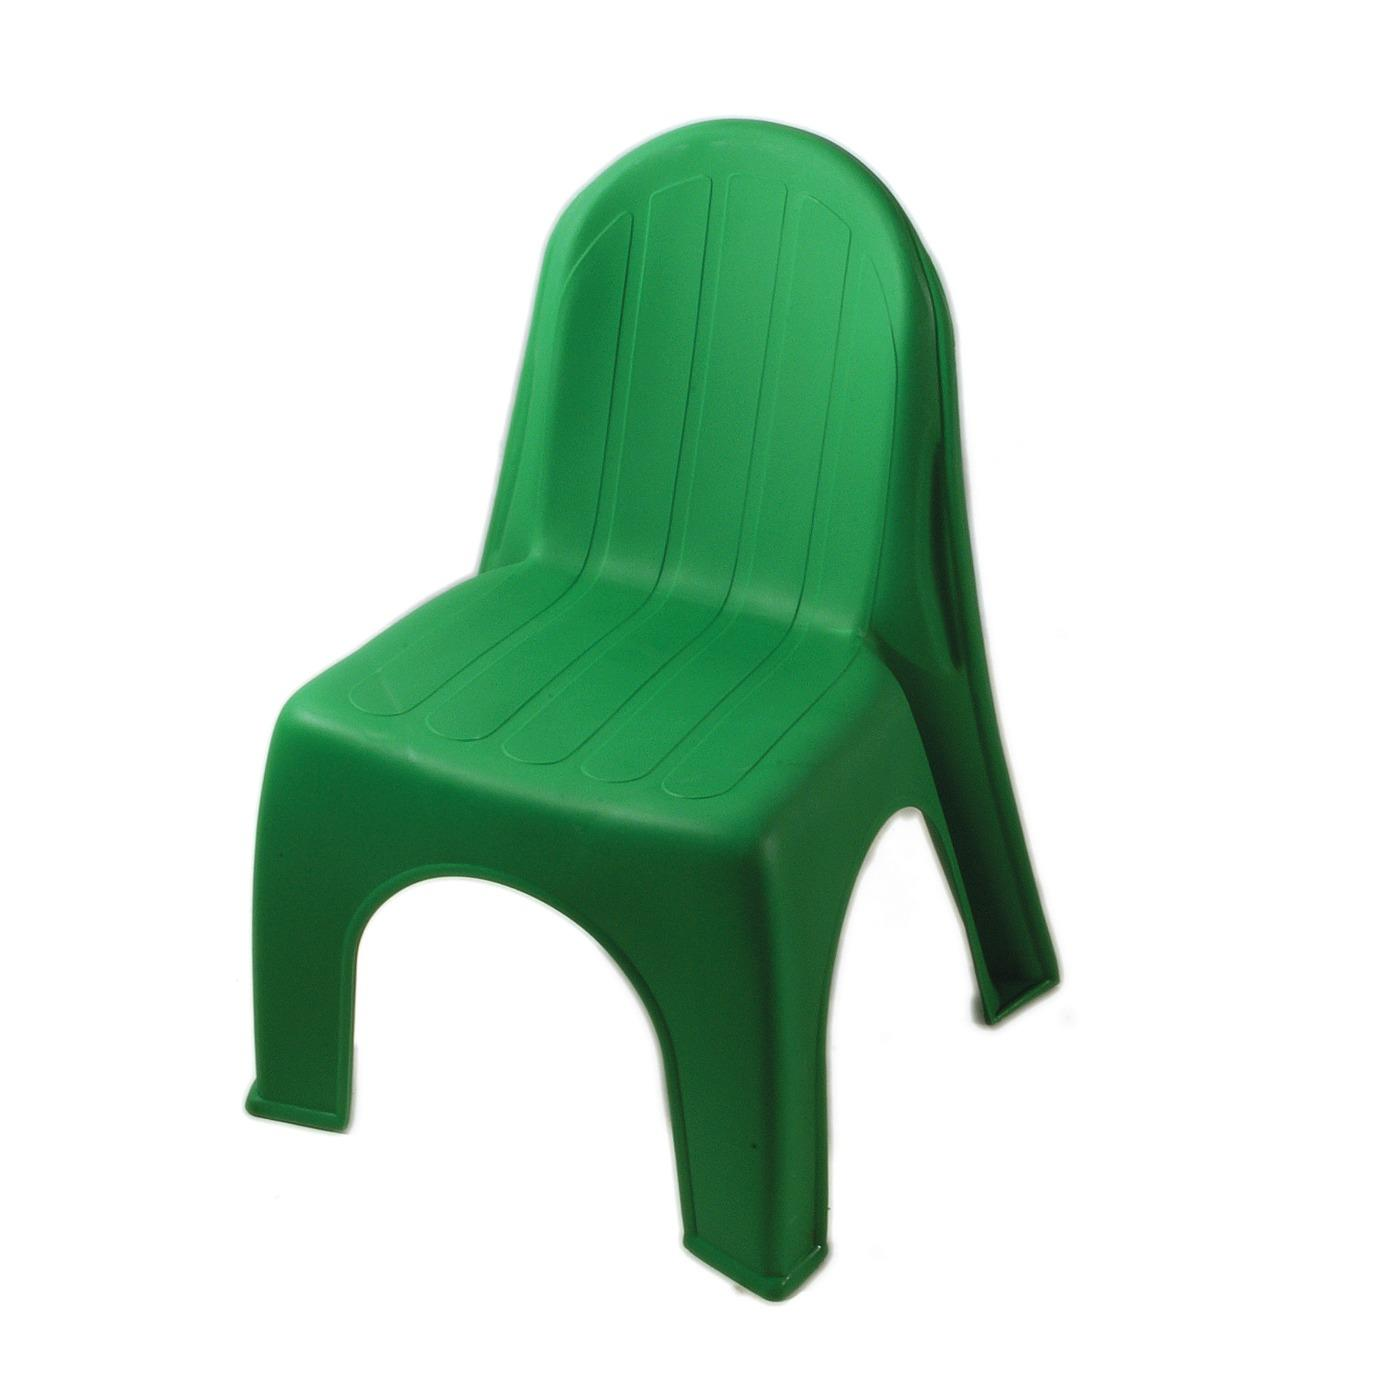 Plastic Children's Chair - Green